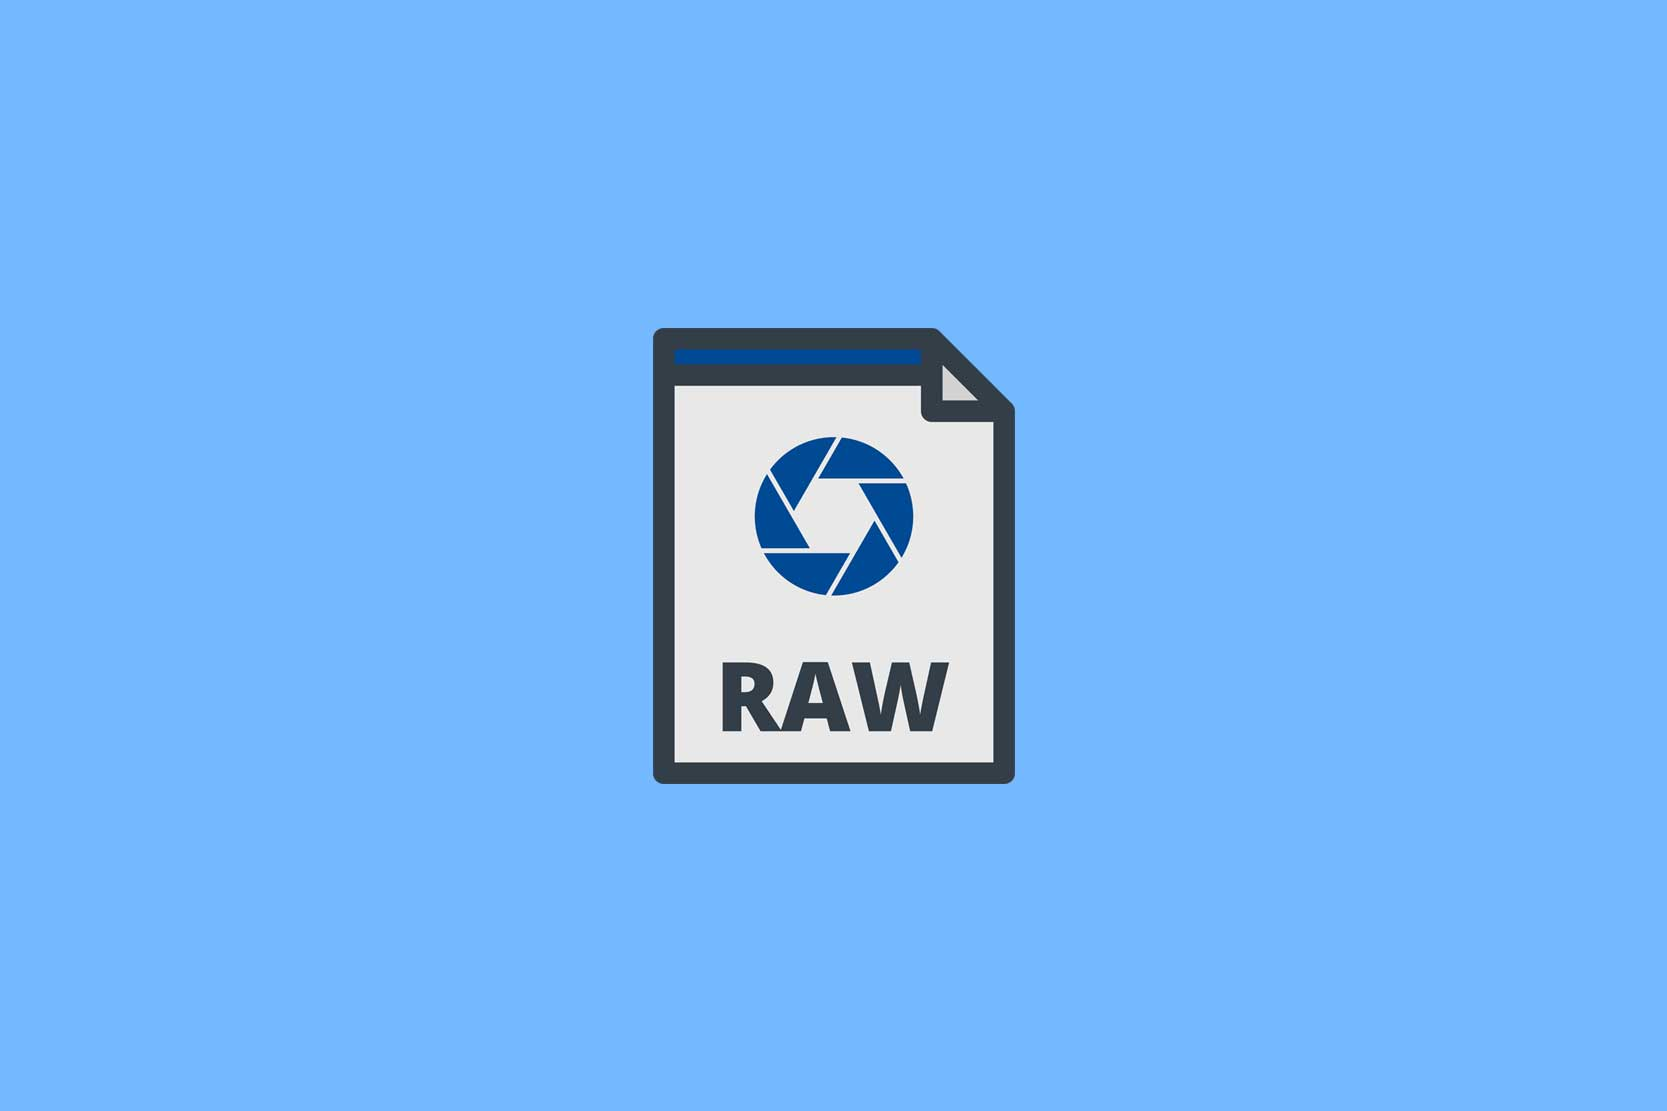 Download RAW Photos and Sharpen Your Editing Skills